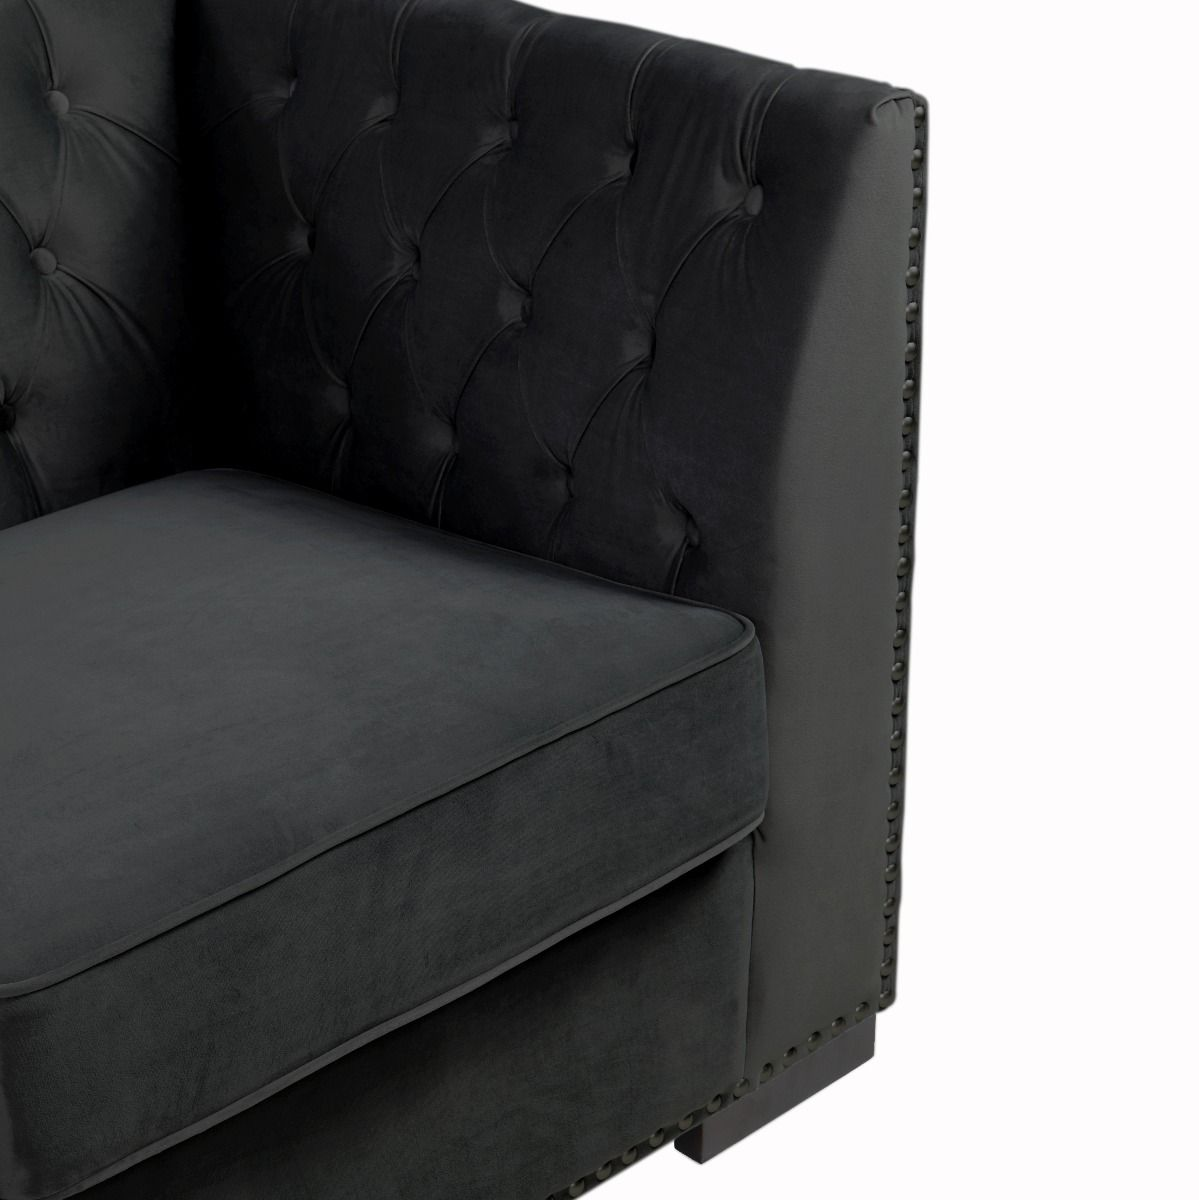 Chesterfield 2 Seater Sofa - Black